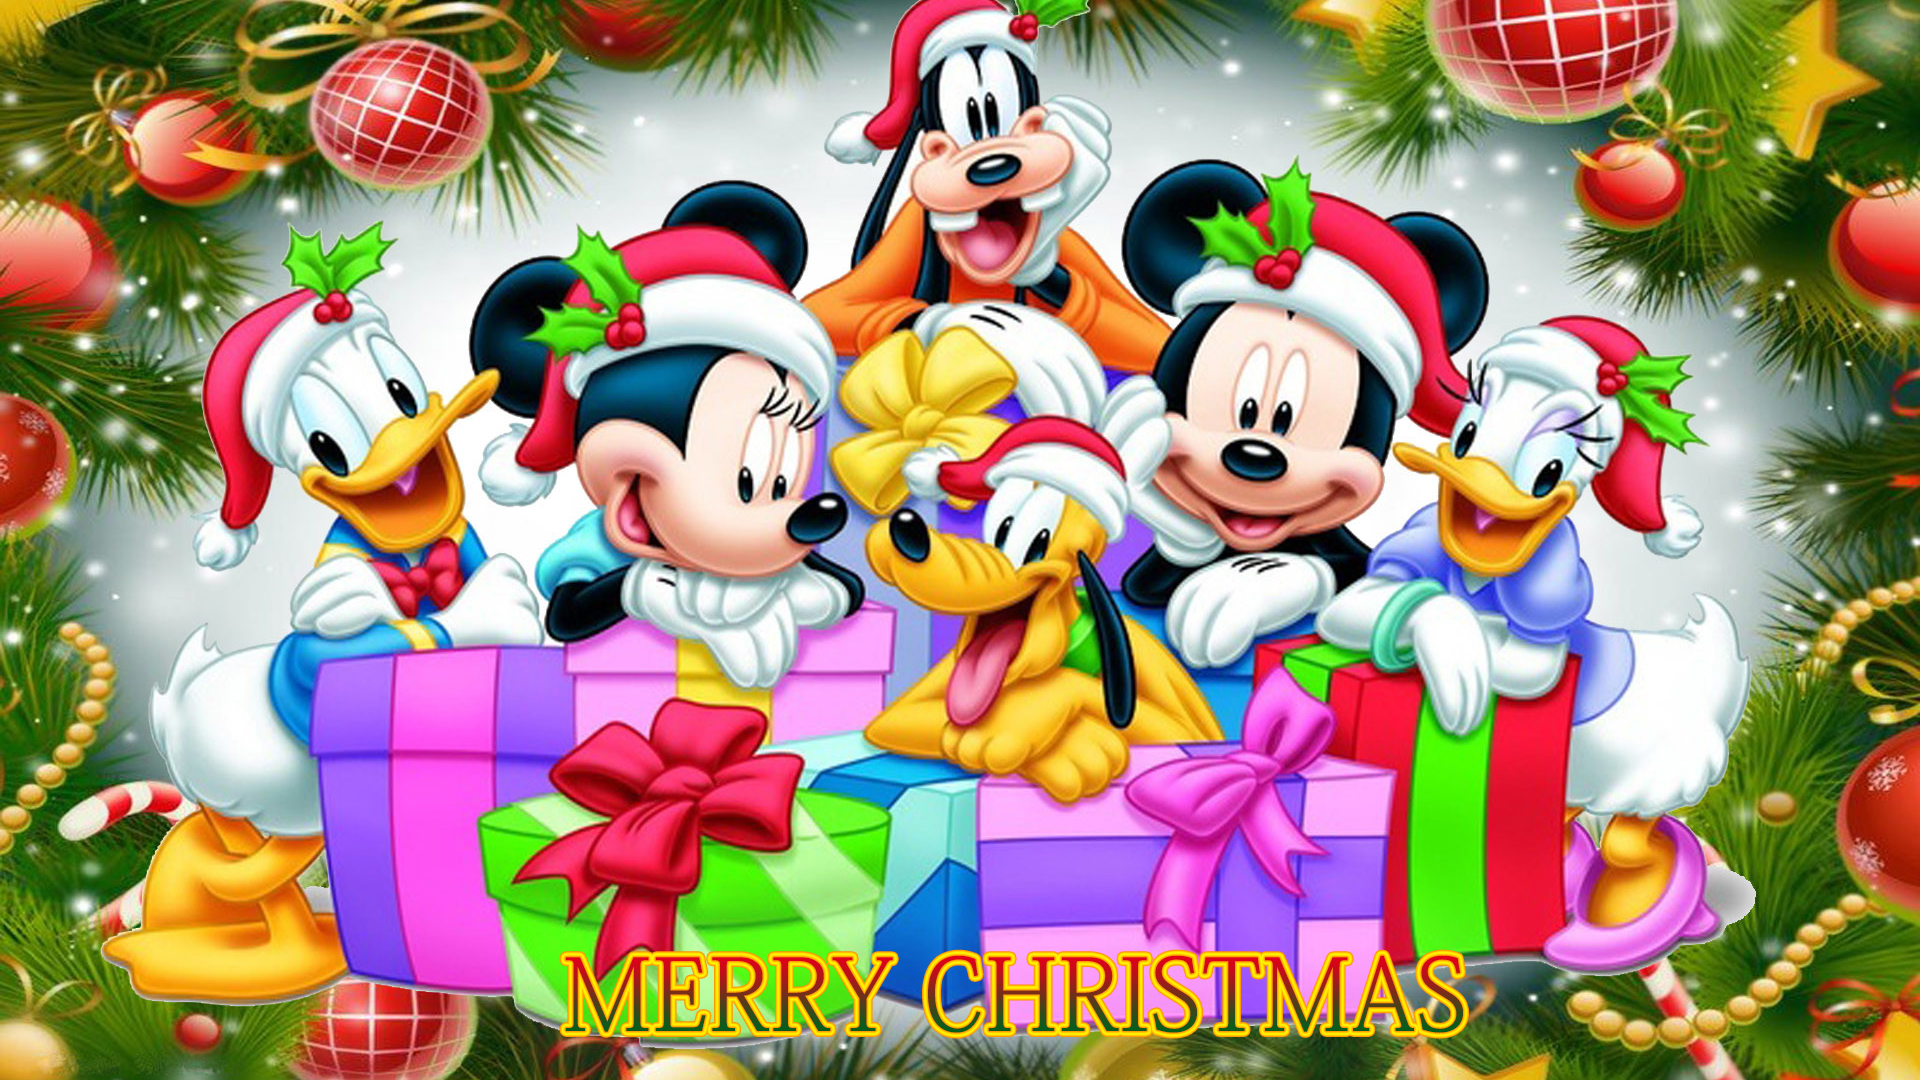 Family Christmas Pictures At Disney World